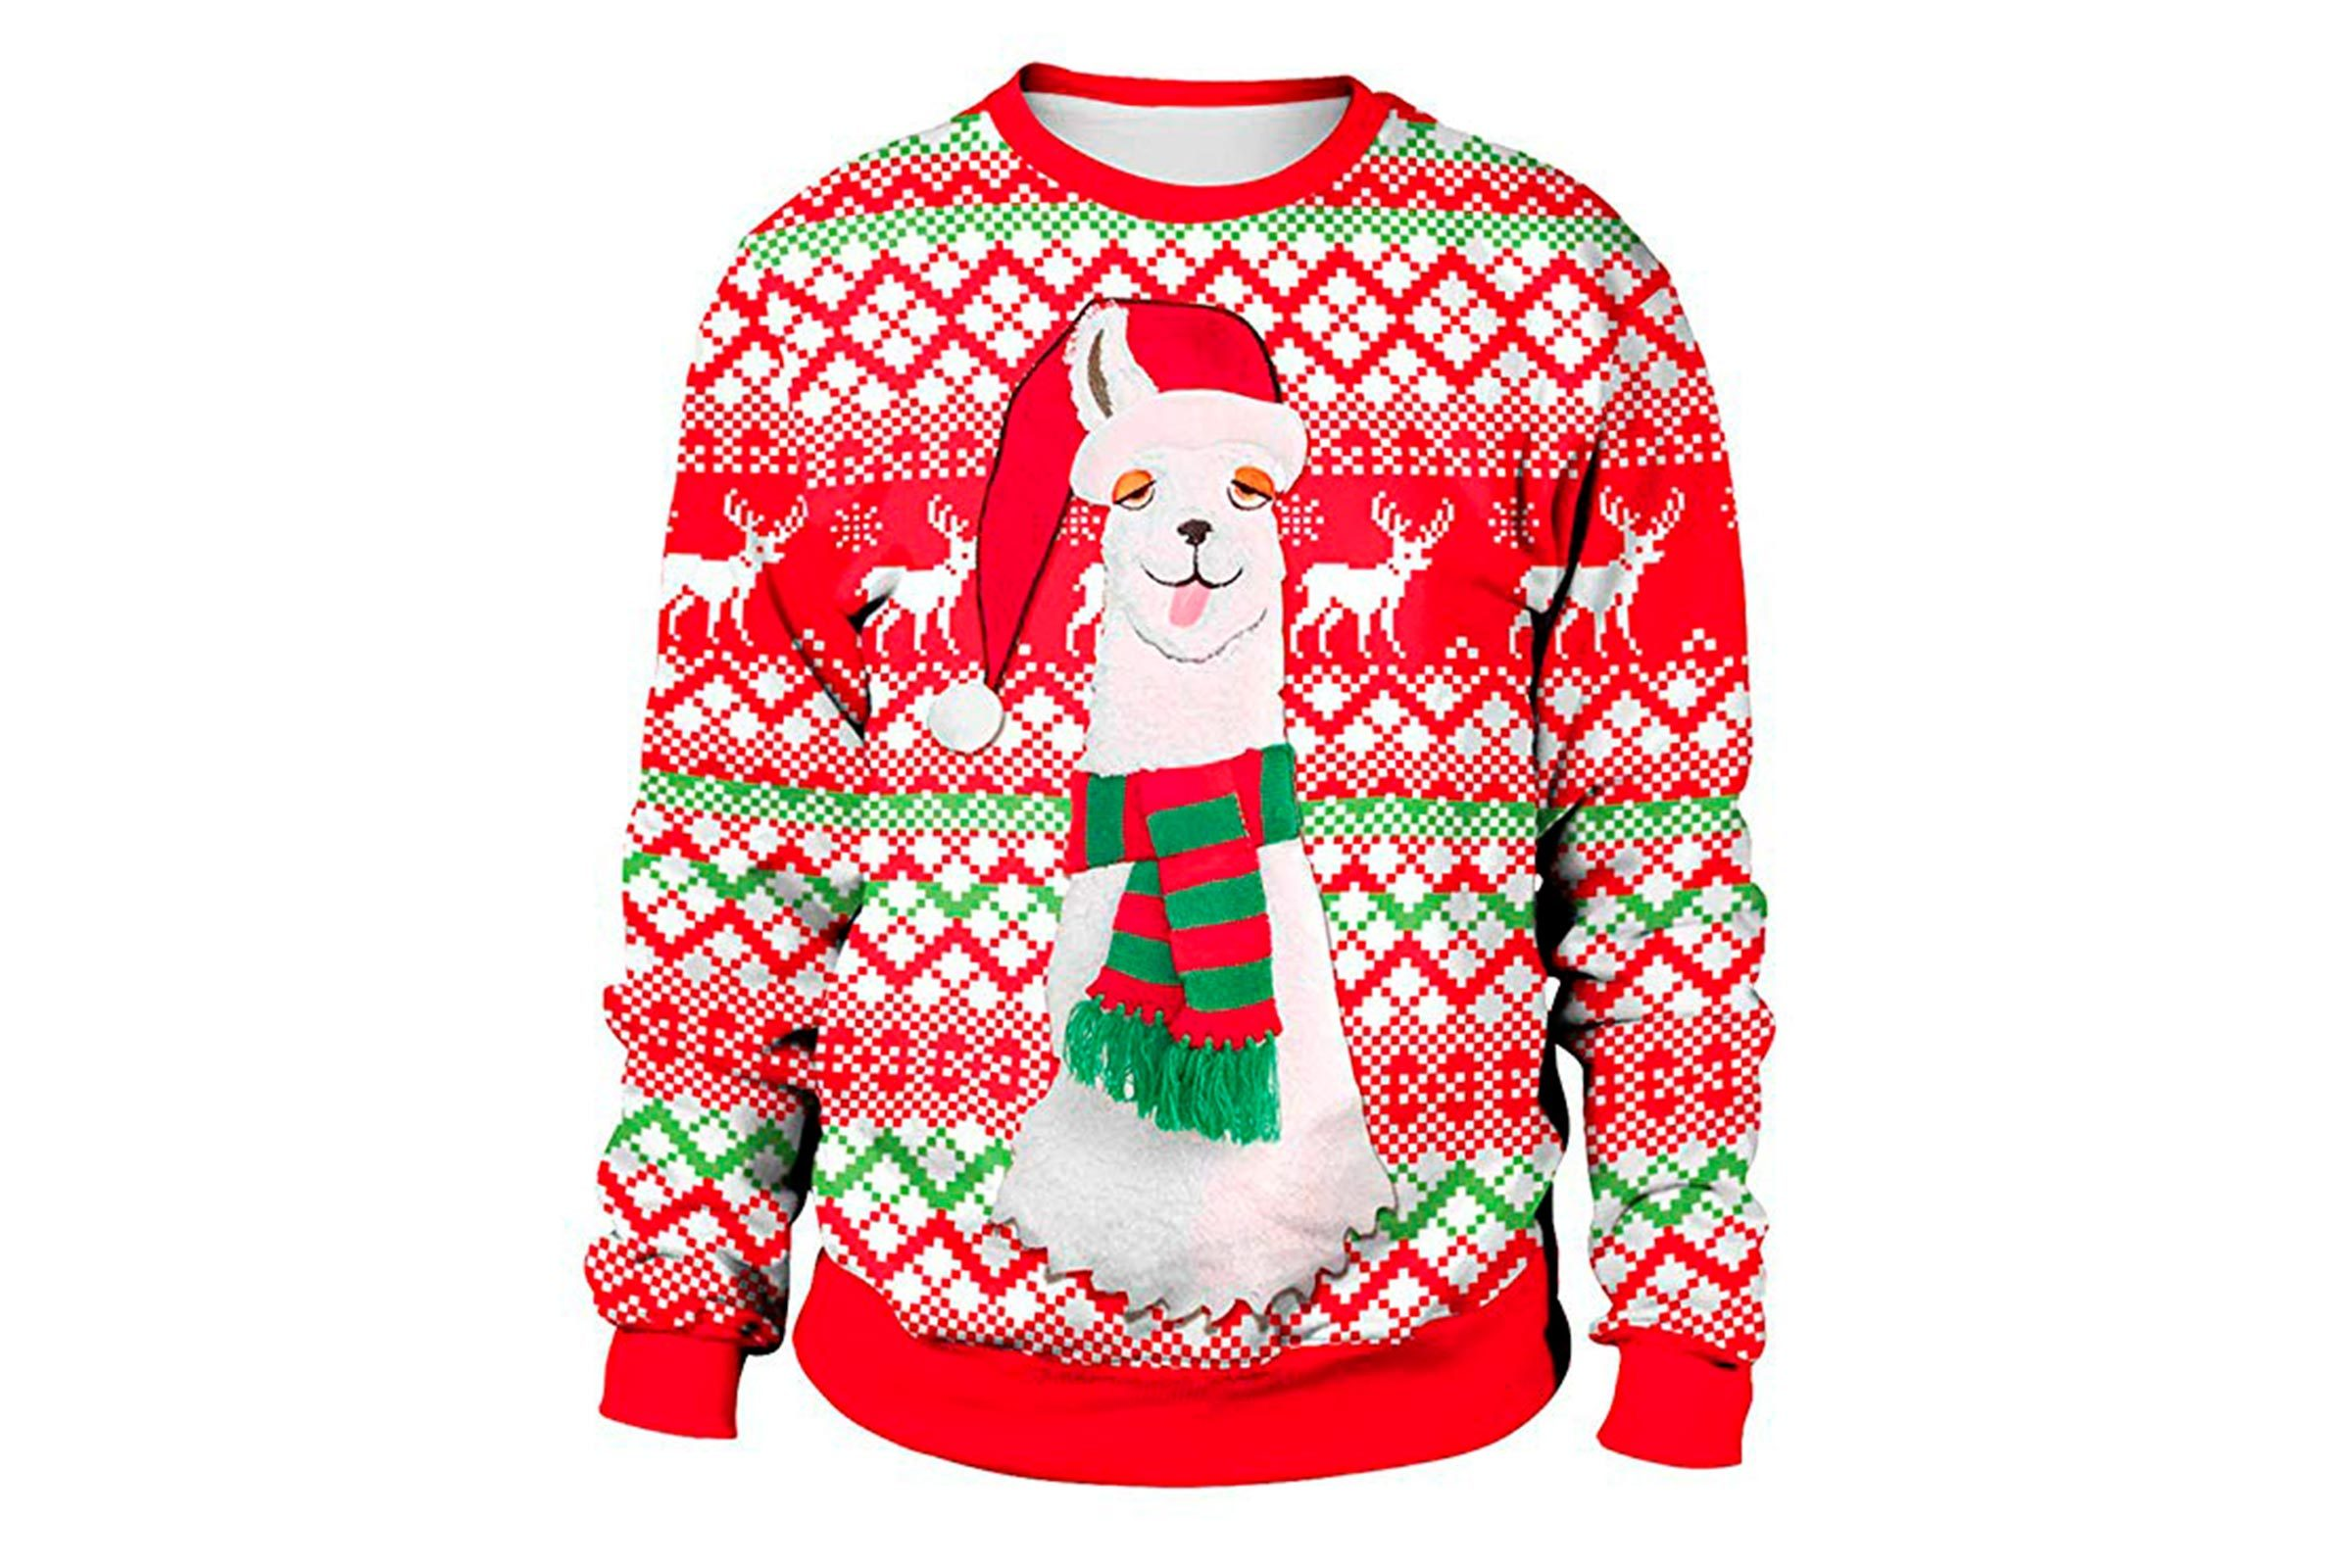 Llama Christmas Sweater.The Best Funny Ugly Christmas Sweaters You Can Buy